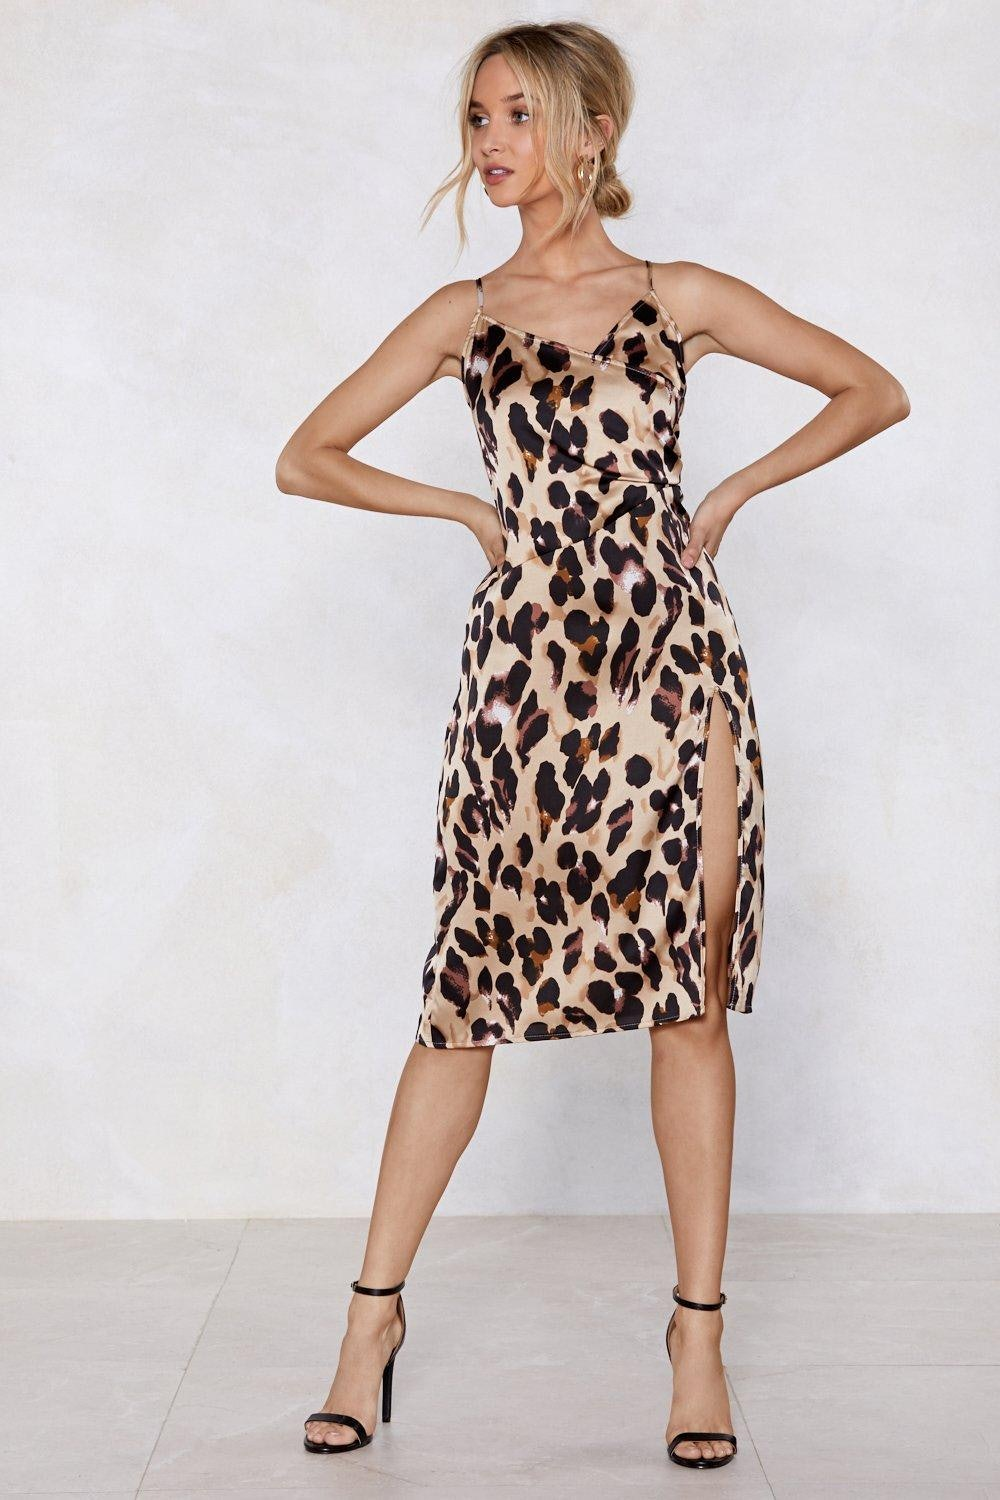 2557615a4e983 10 Leopard Print Dresses To Make Your Summer Style Extra Purrrfect